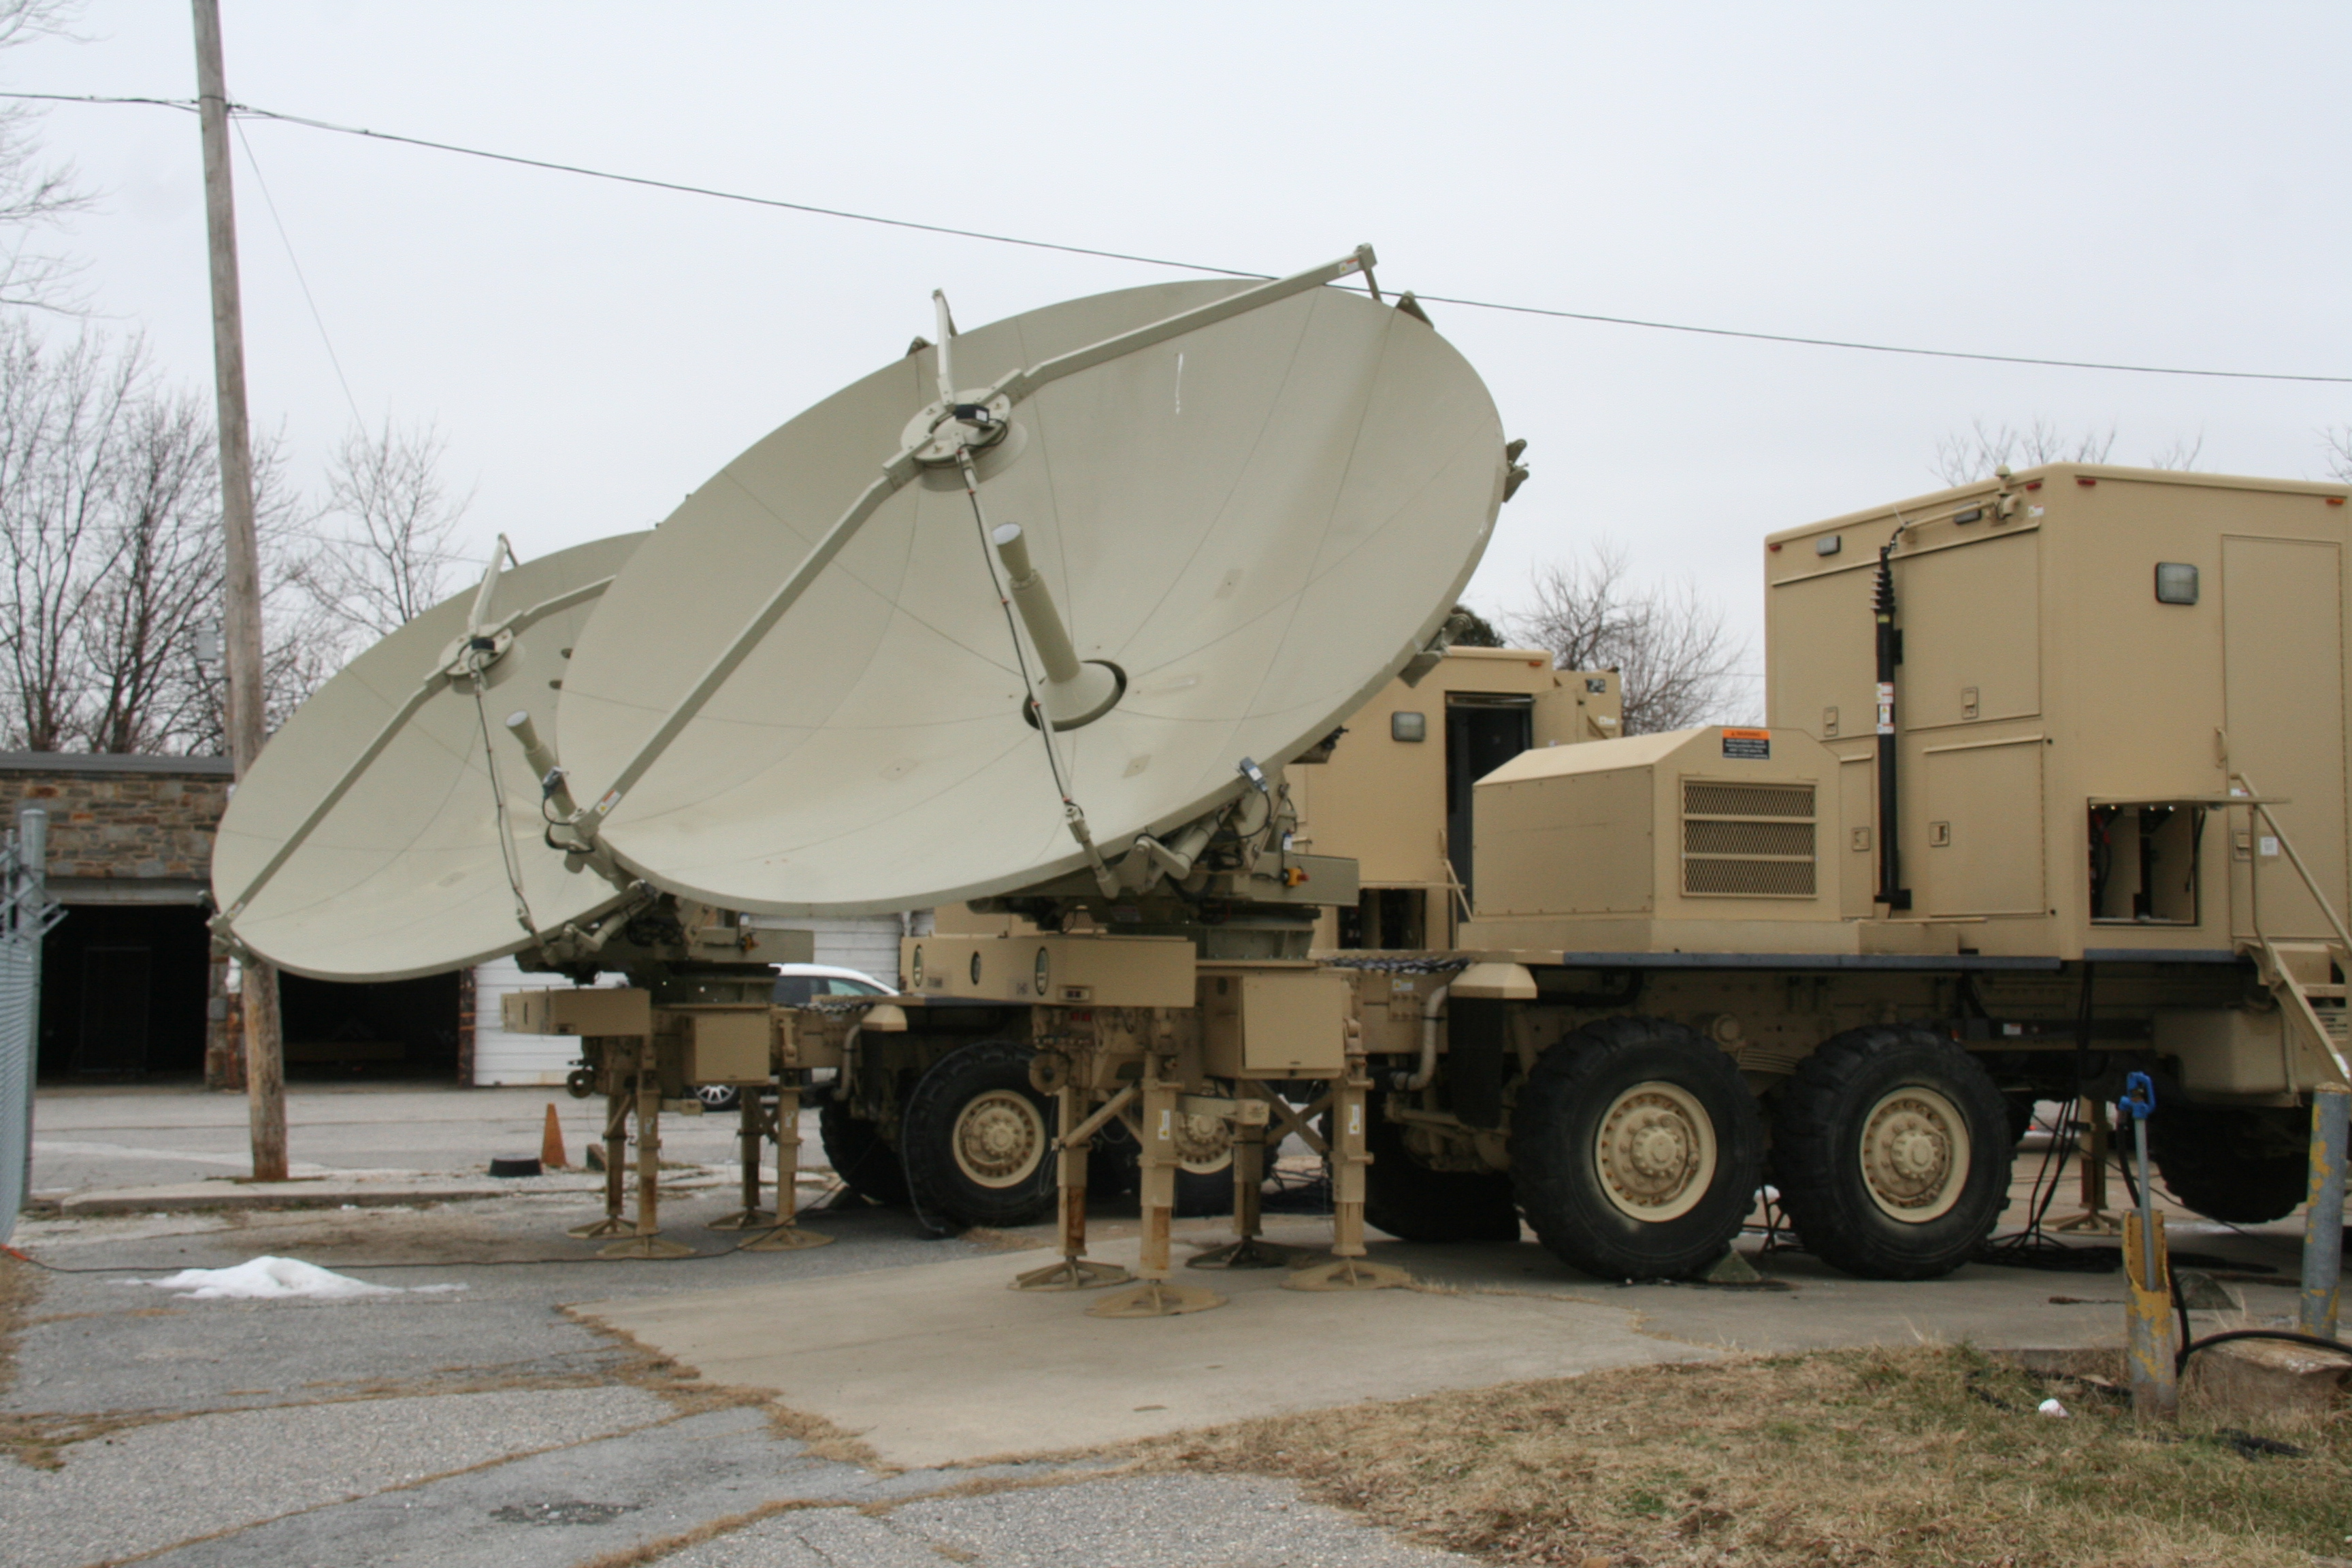 The National Guard's C Signal Company, 29th Infantry Division's training on Warfighter Information Network-Tactical (WIN-T) Increment 1 upgrades at Pikesville, Maryland on January 7, 2015 included training on these two WIN-T Unit Hub Satellite Communication Trucks. Amy Walker, PEO C3T/U.S. Army